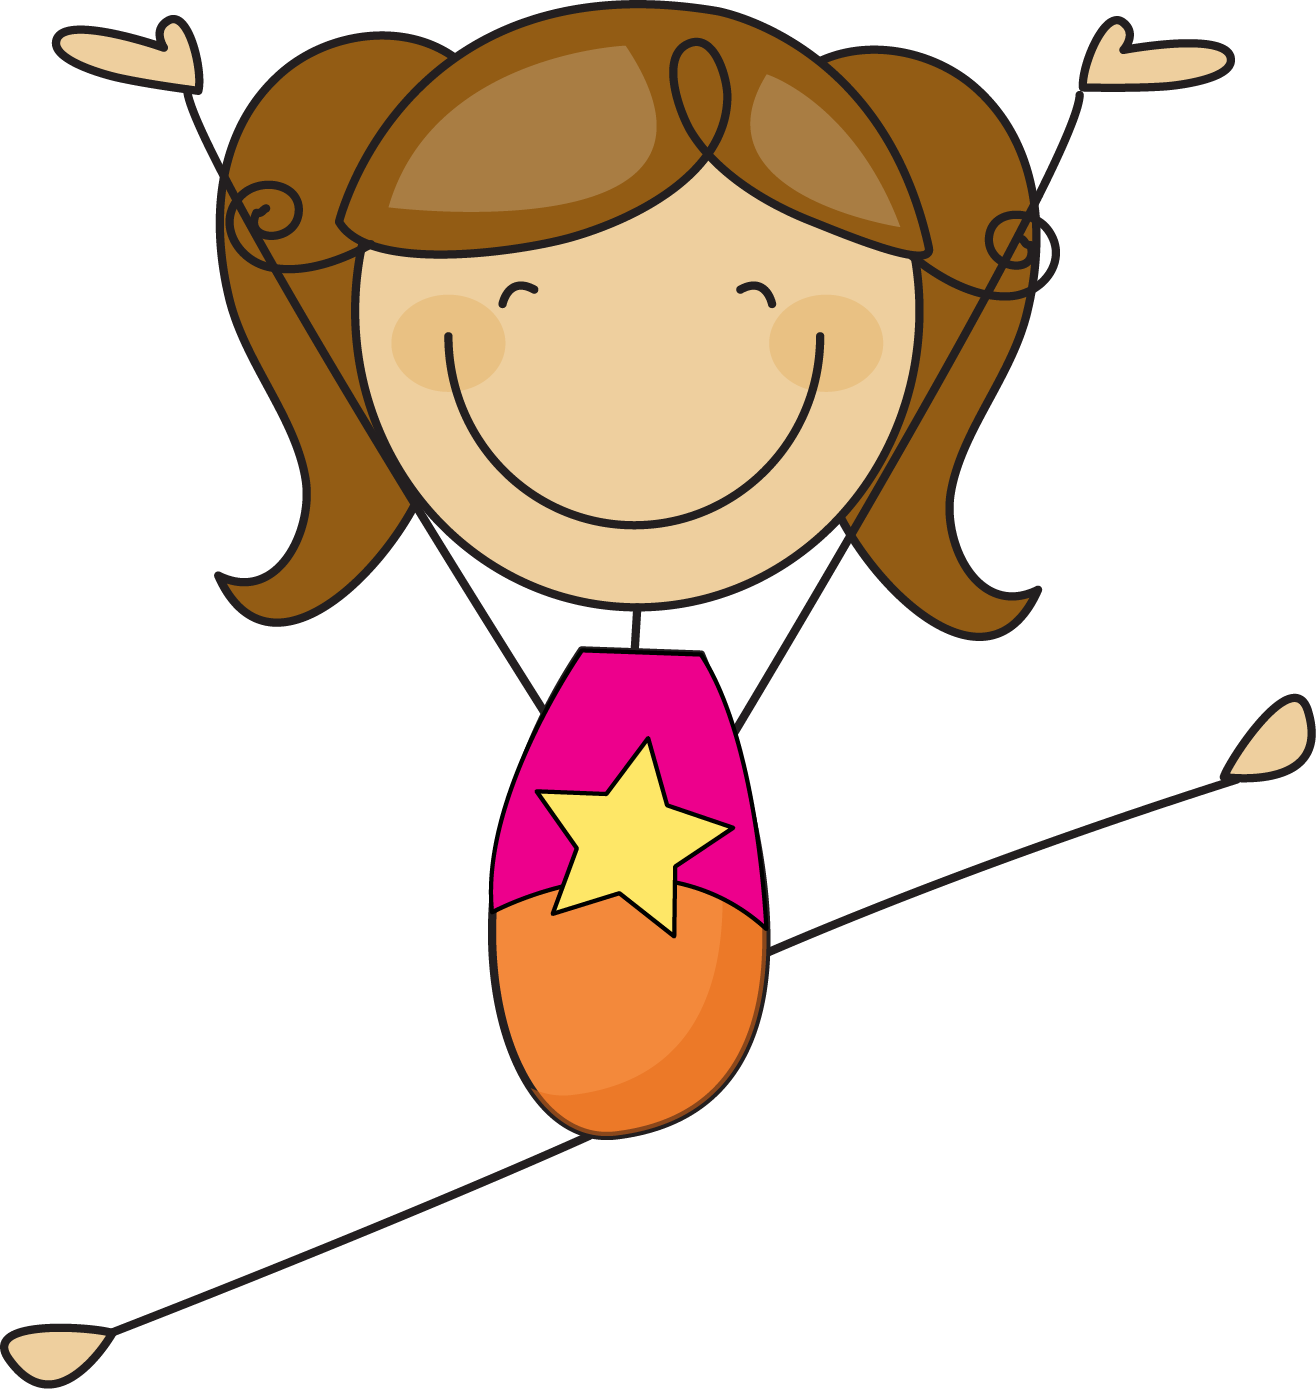 Student clipart stick figure. Girl cartoon free download